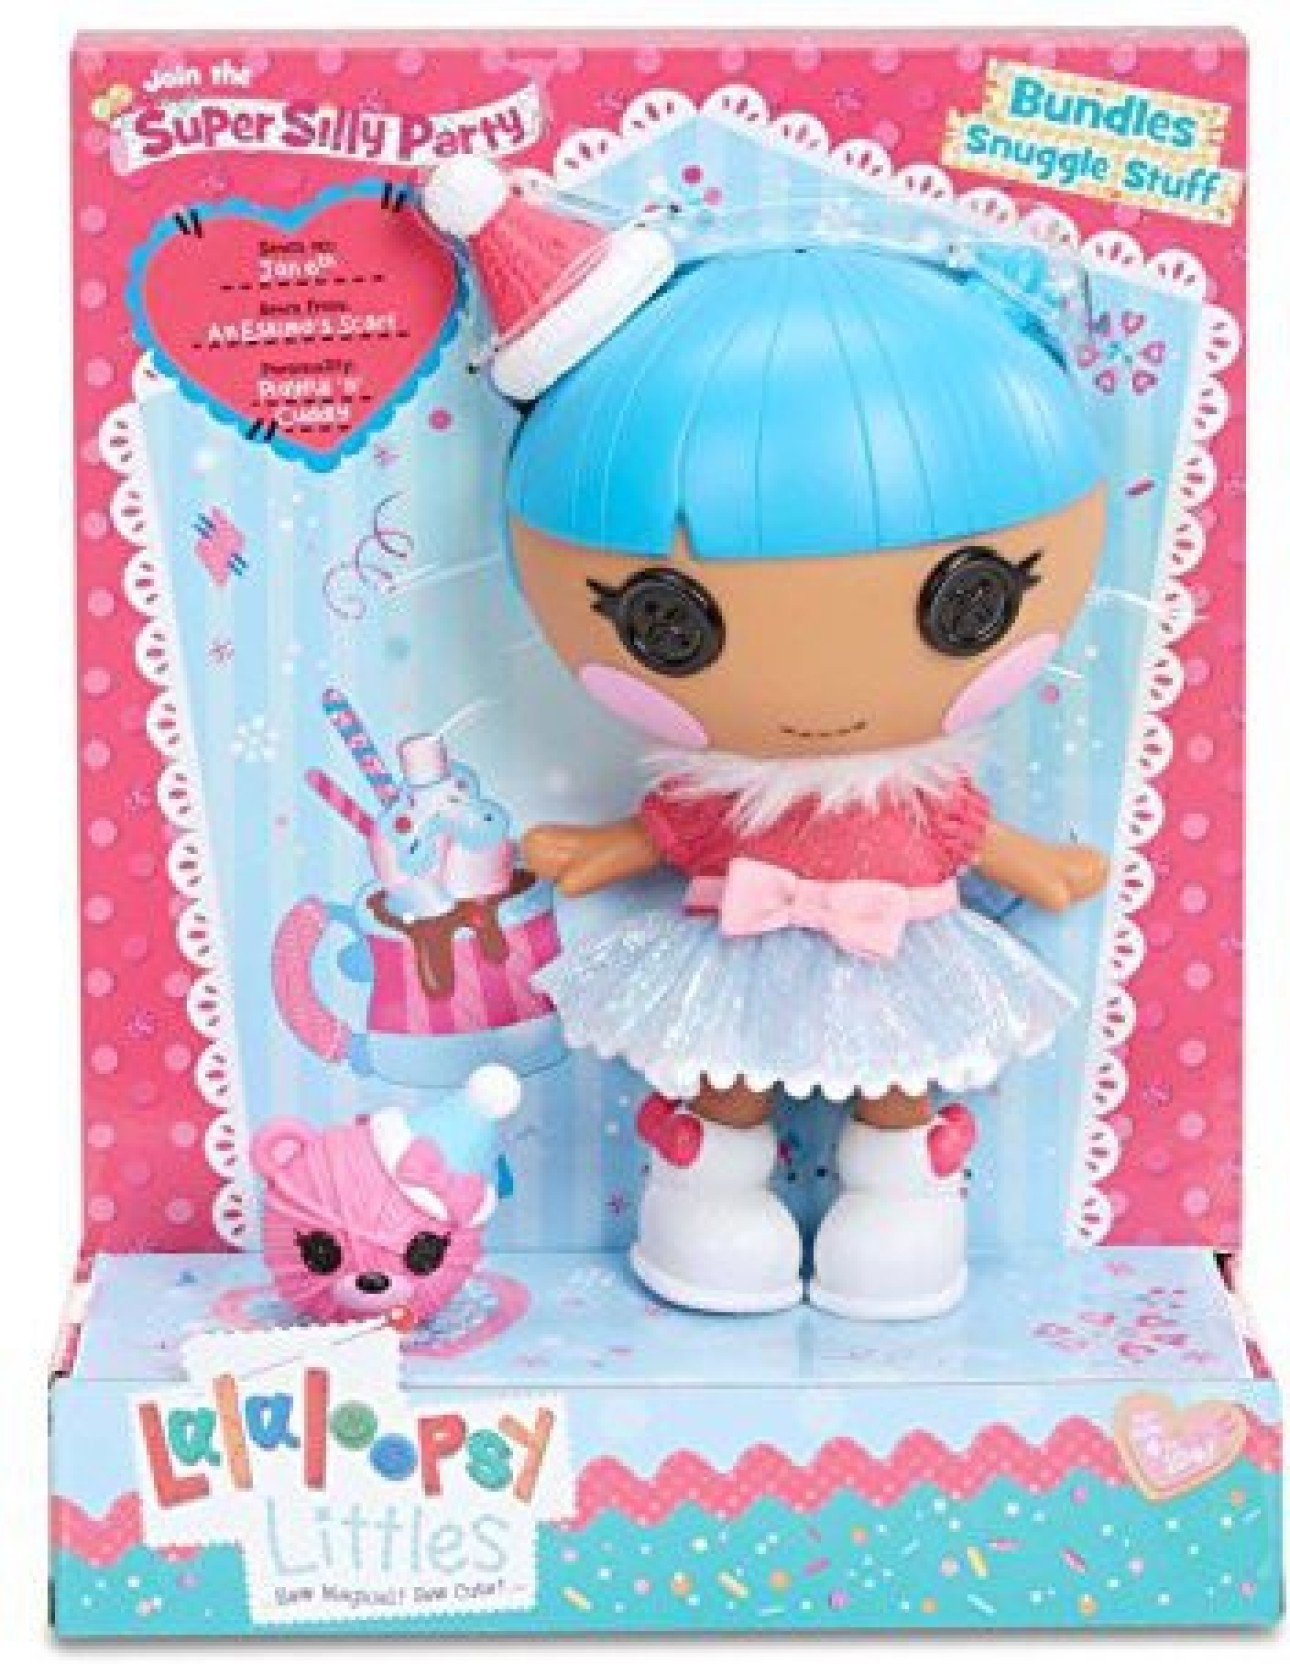 Lalaloopsy Littles Super Silly Party Doll- Bundles Snuggle Stuff ...